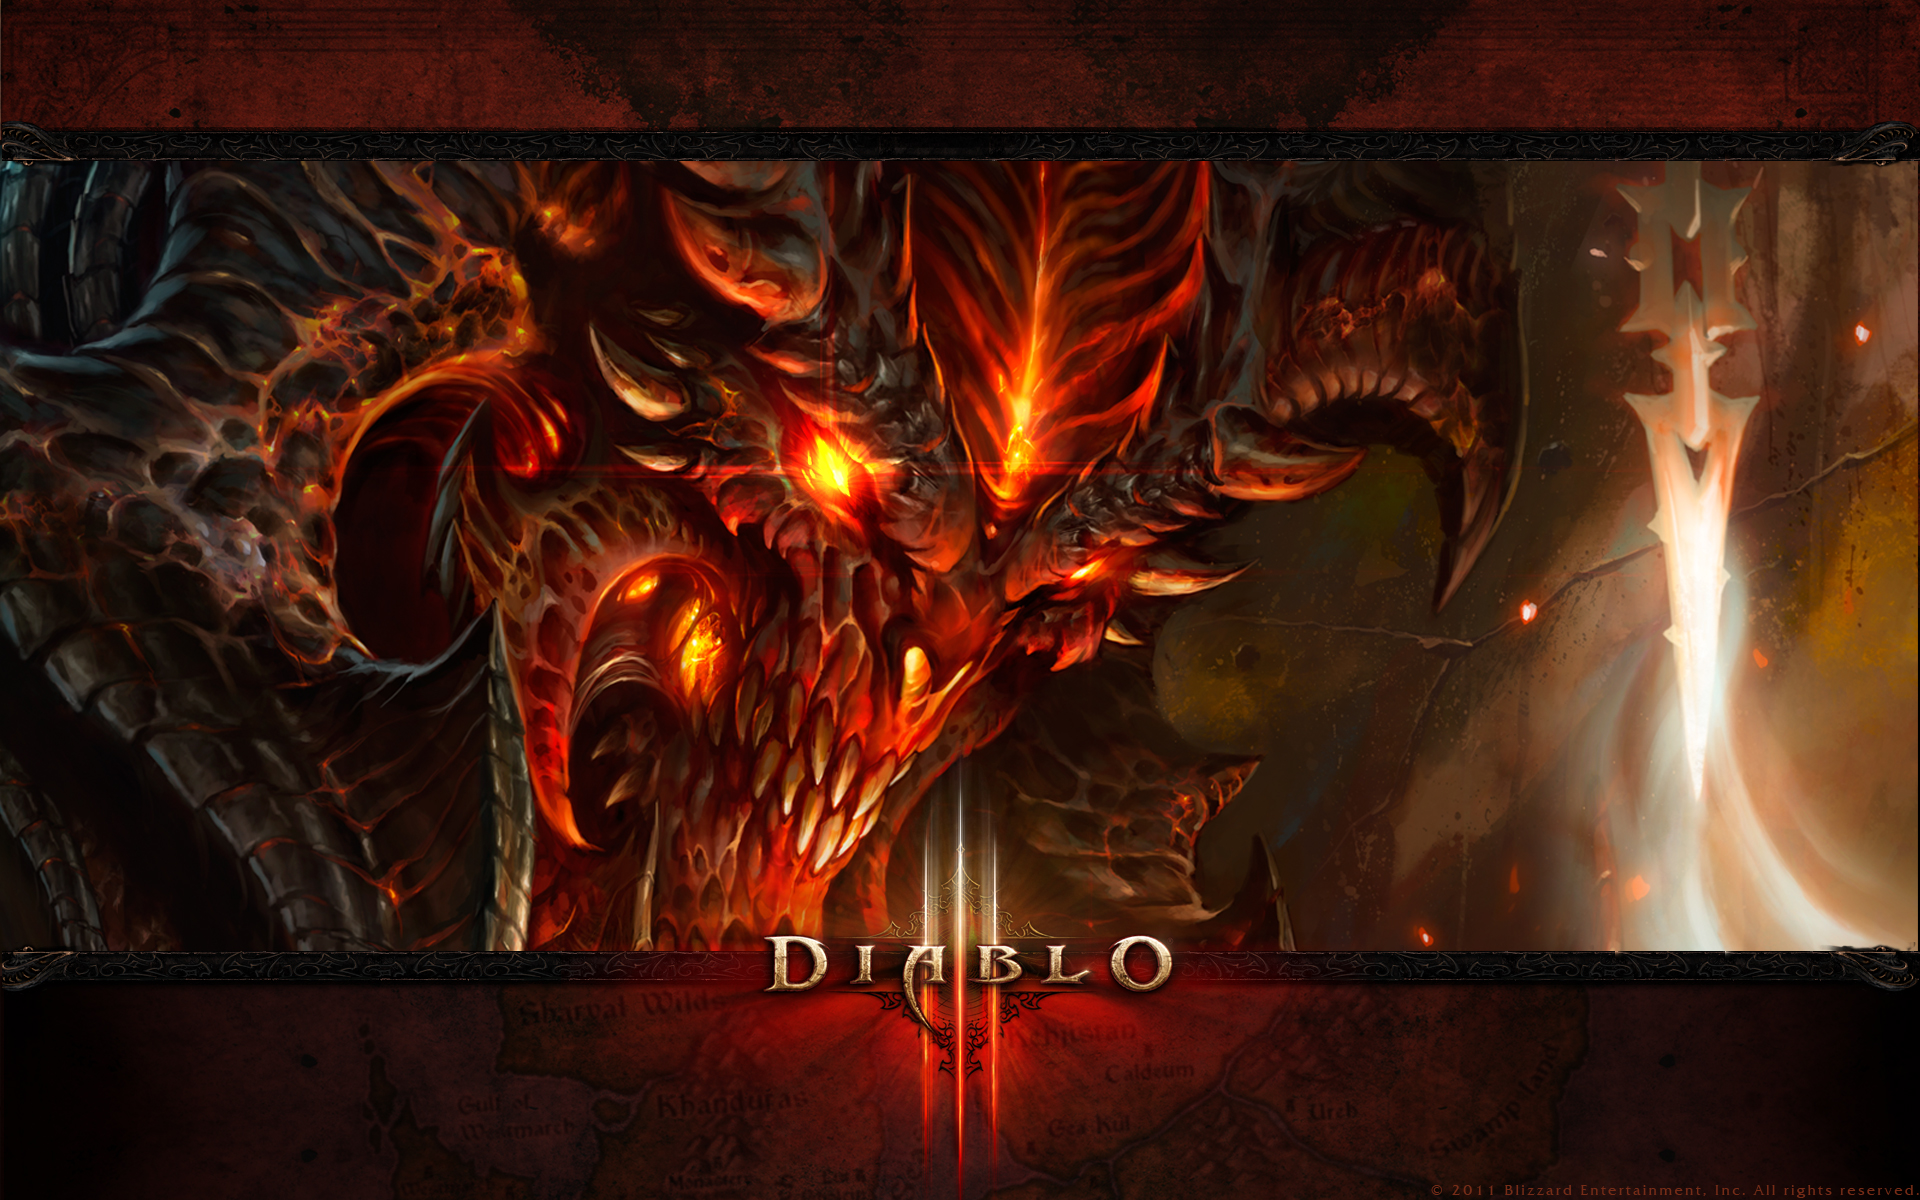 [49+] Diablo 3 Animated Wallpaper on WallpaperSafari